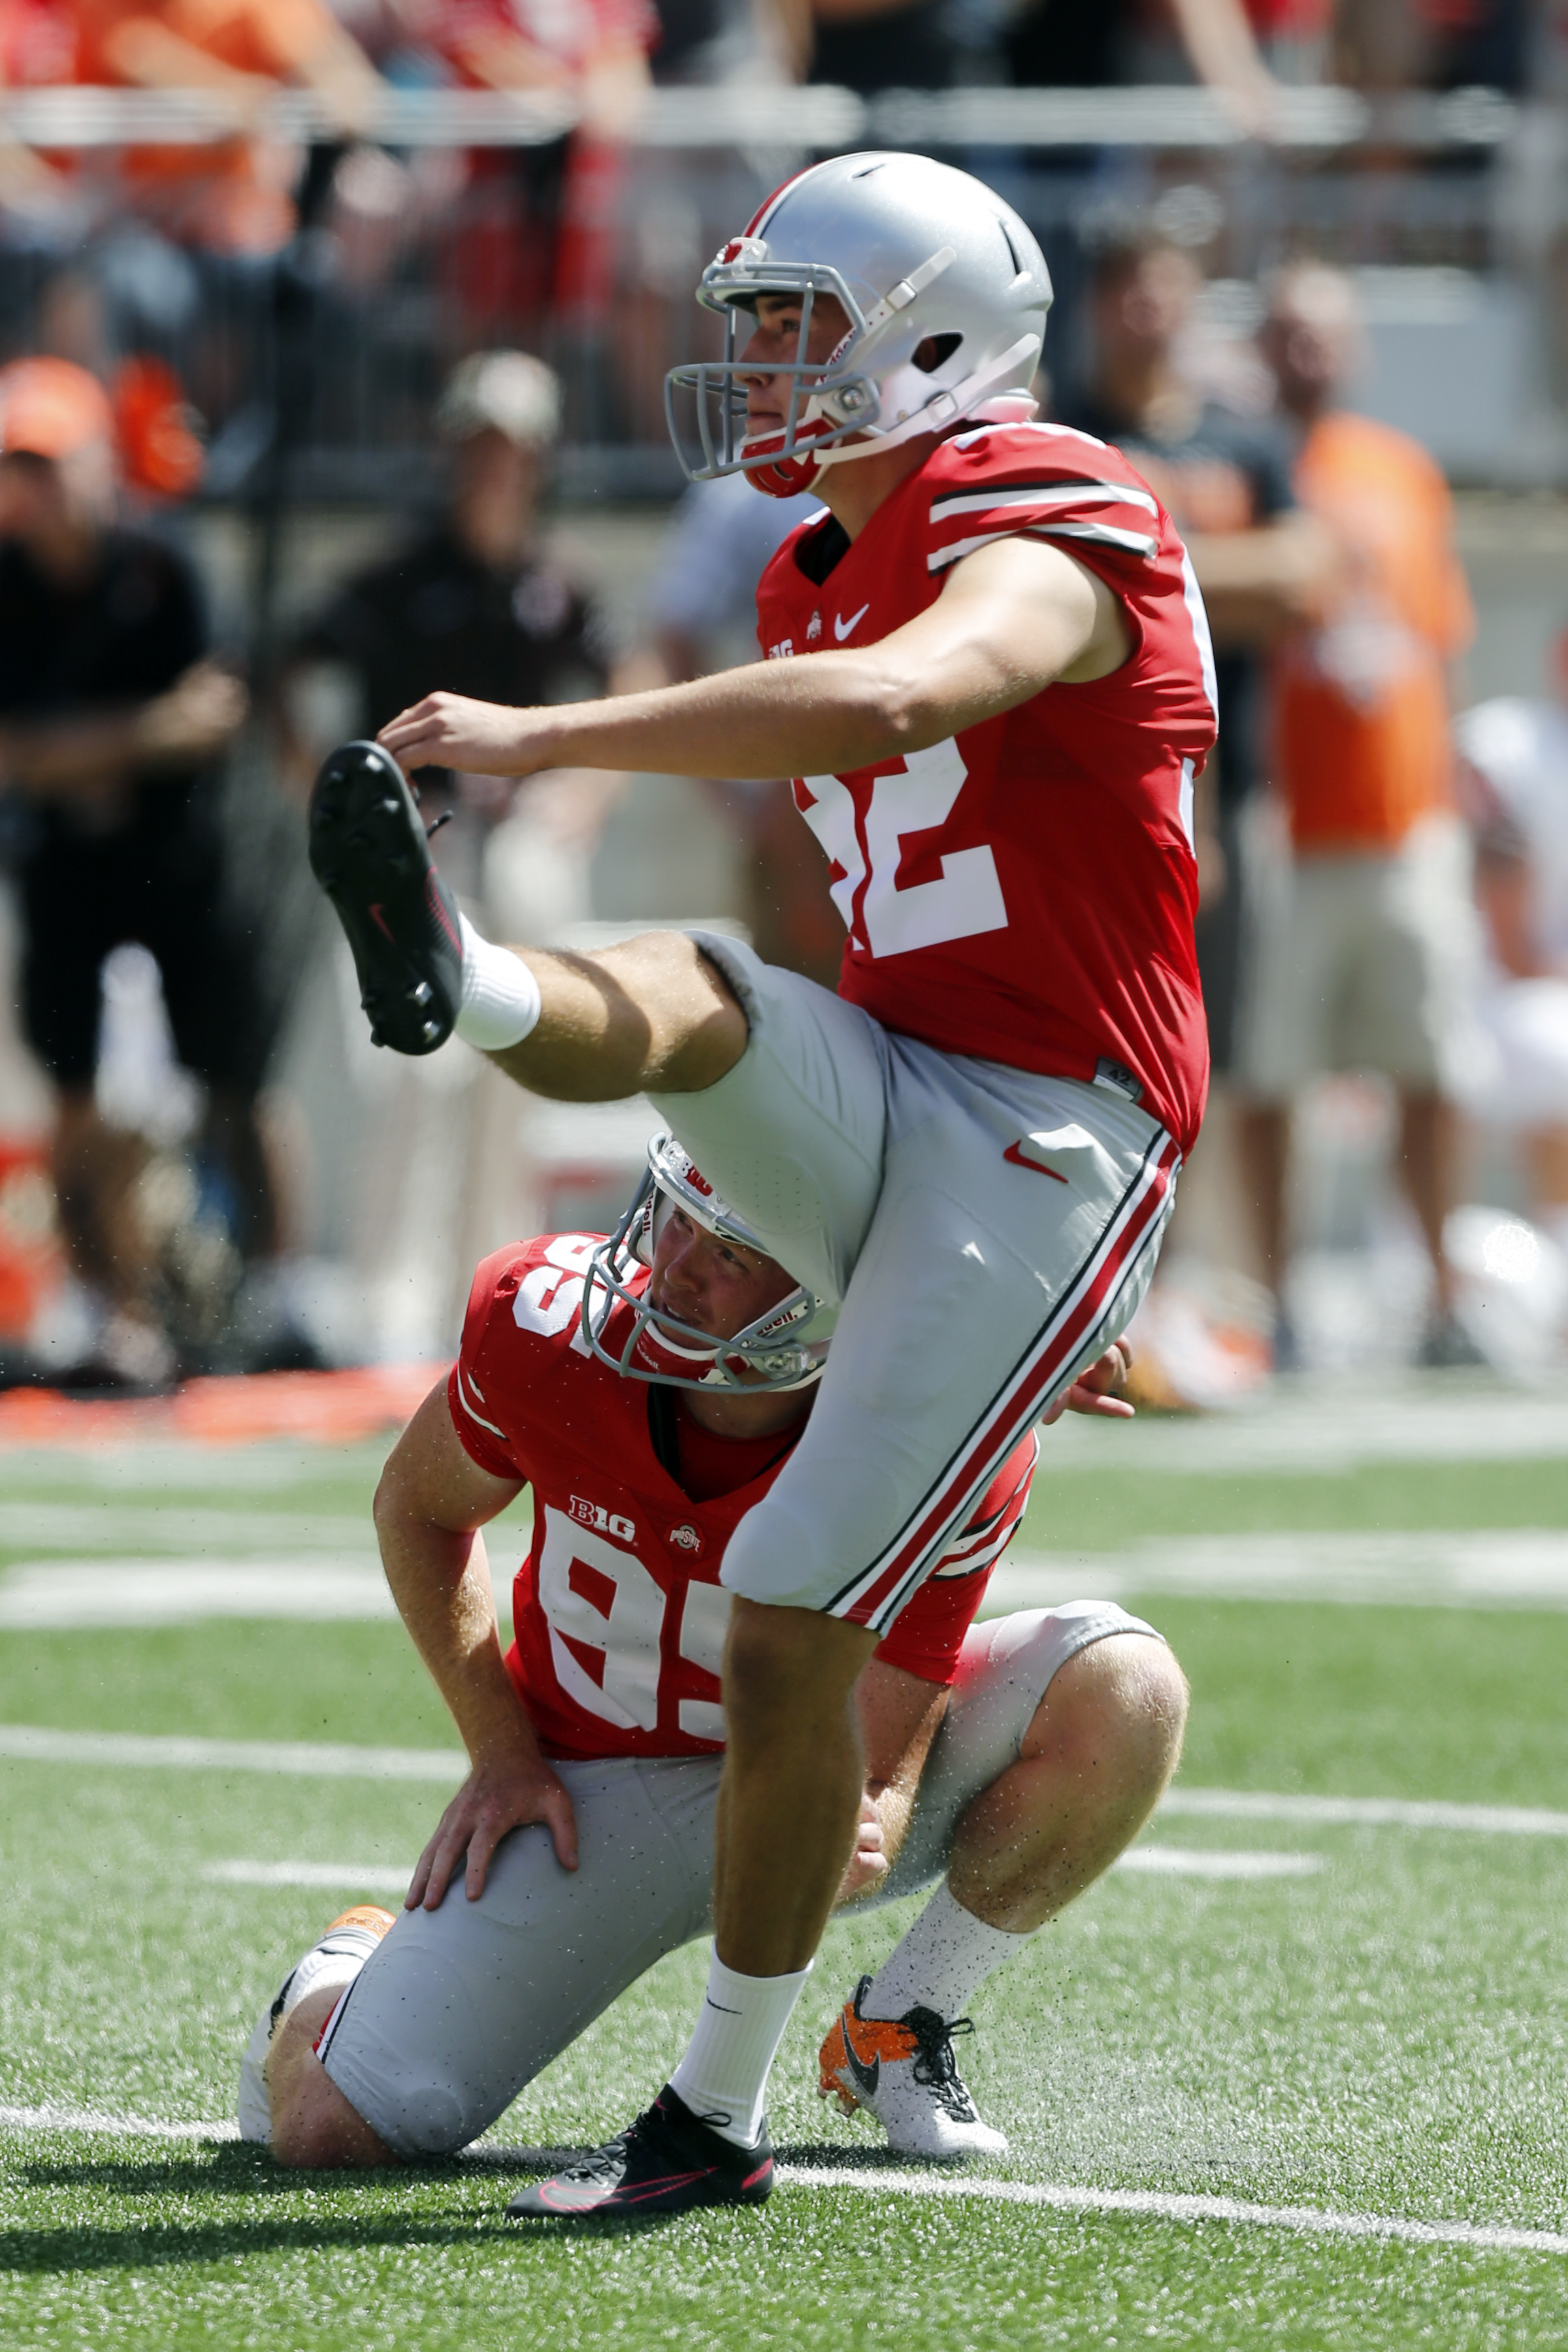 FILE - In this Sept. 3, 2016, file photo, Ohio State kicker Tyler Durbin, front, and holder Cameron Johnston watch Durbin's extra point attempt during the first half of their NCAA college football game against Bowling Green Saturday, Sept. 3, 2016, in Col